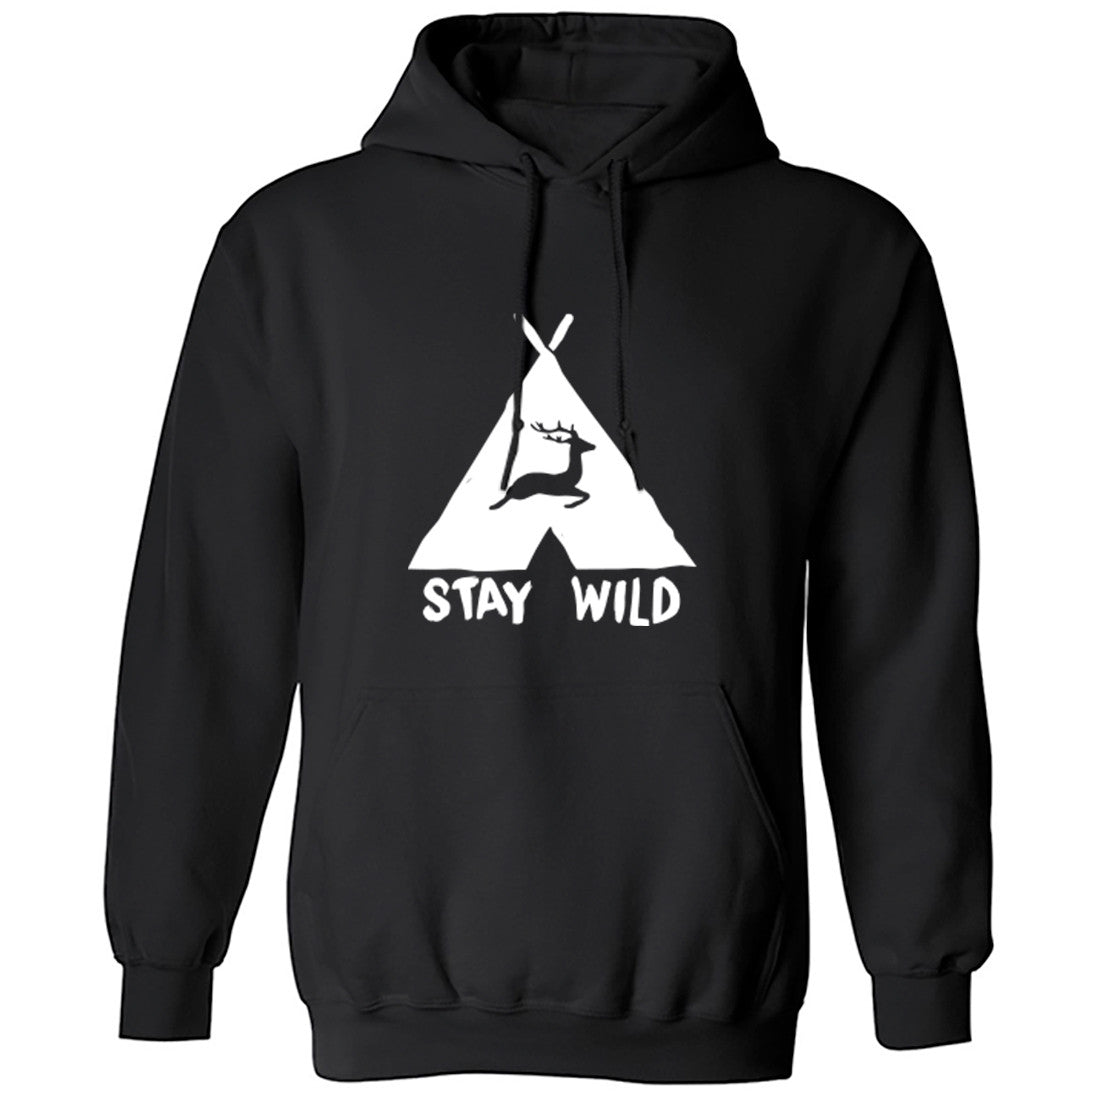 Stay Wild Unisex Hoodie K0090 - Illustrated Identity Ltd.